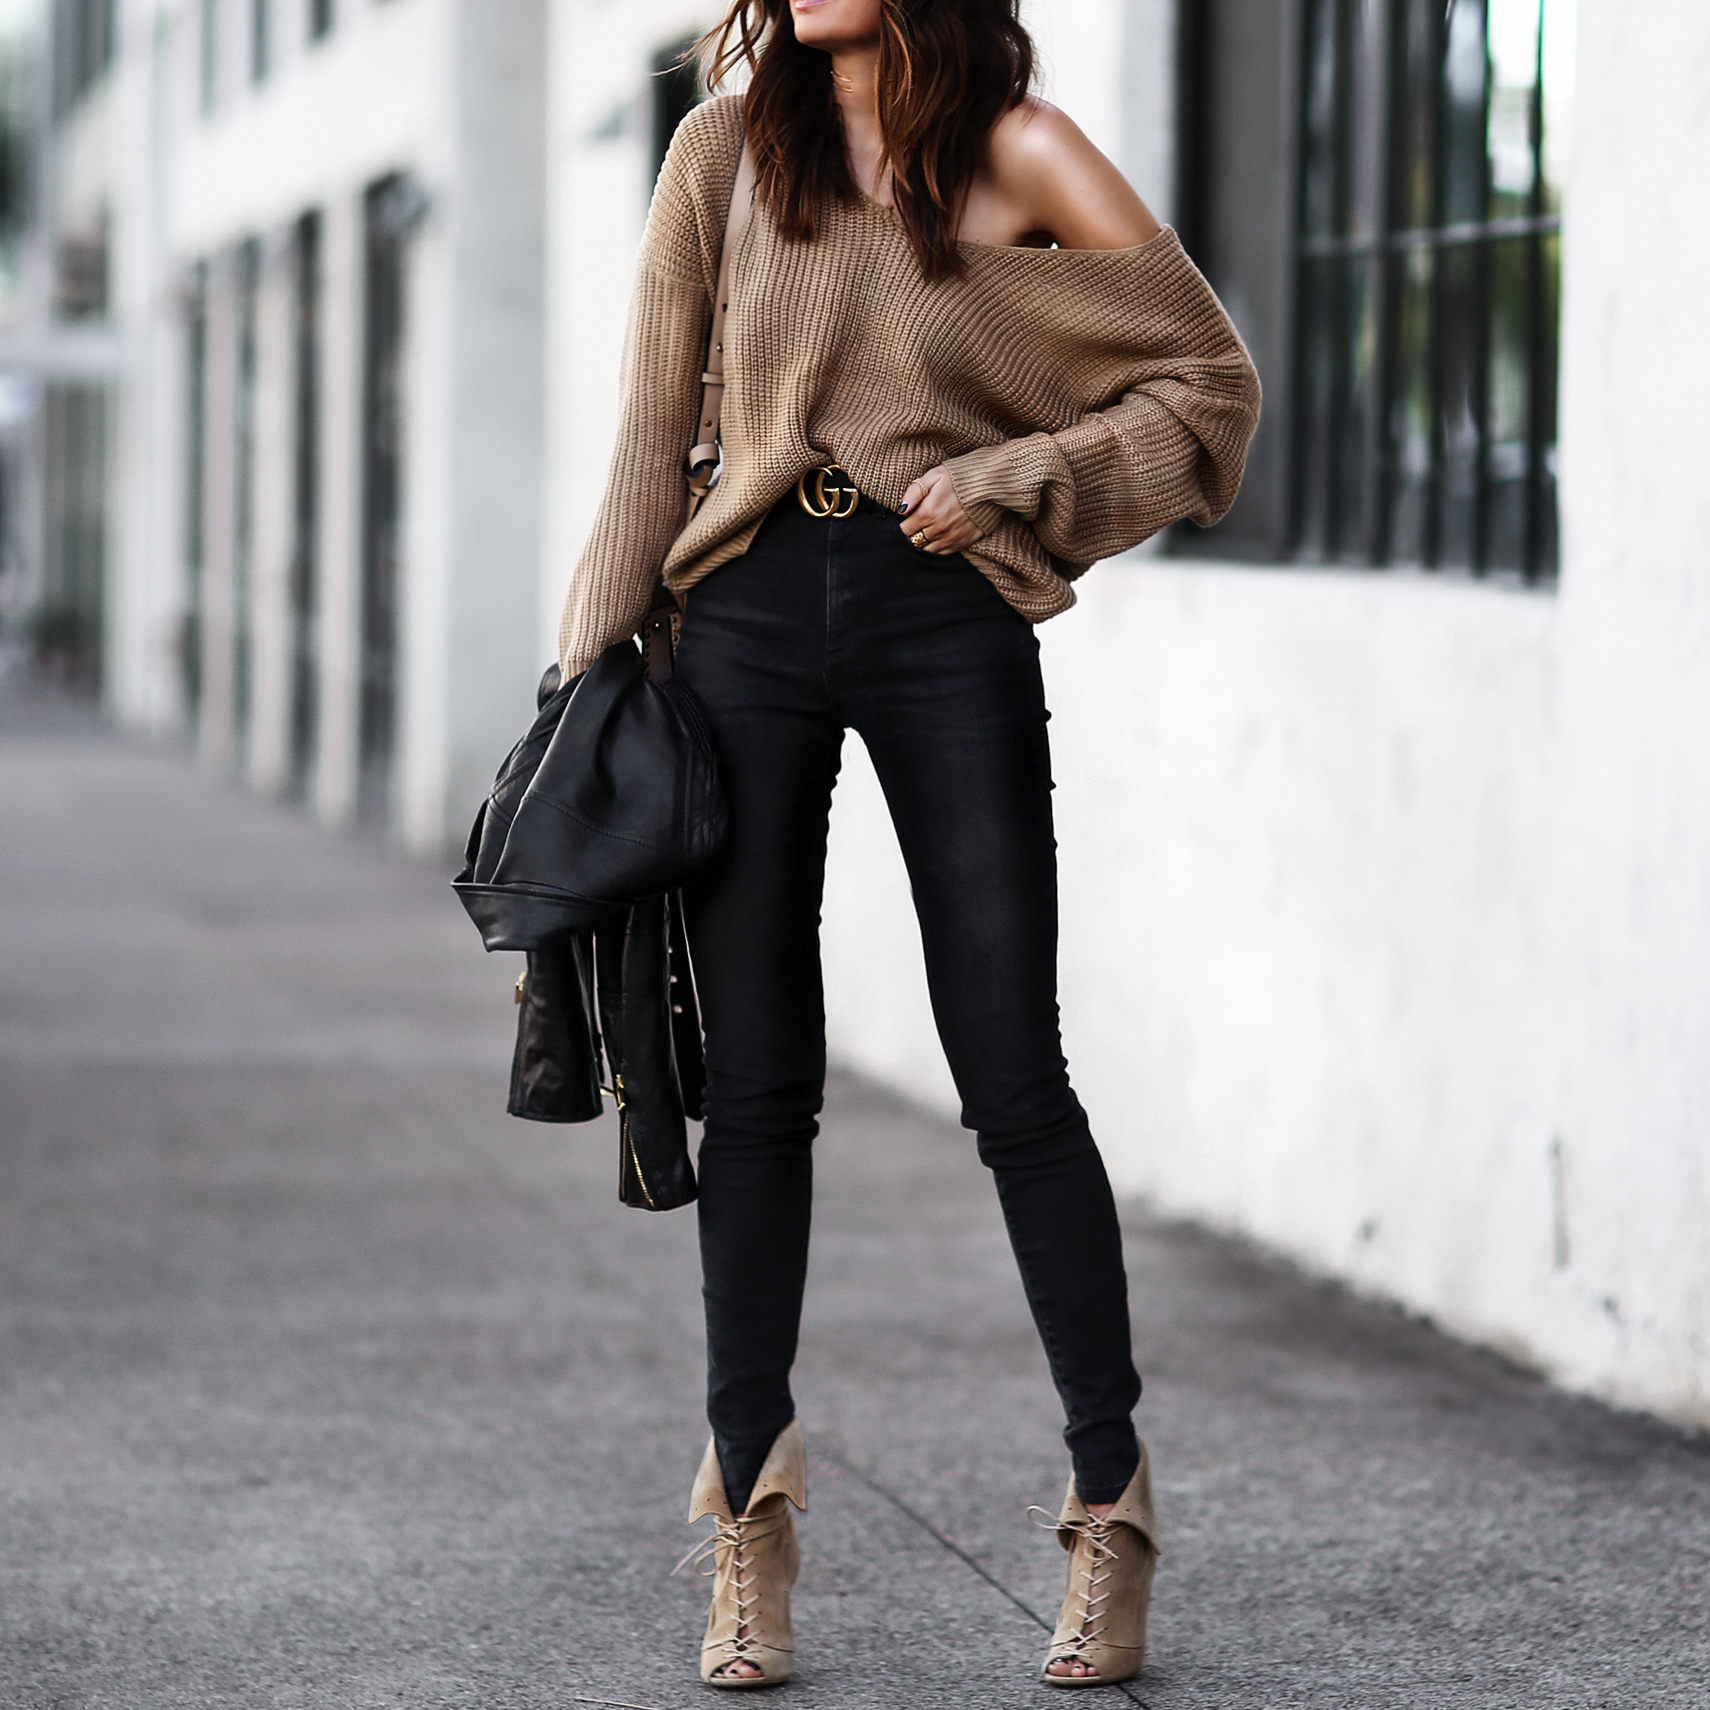 slouchy camel sweater, gucci belt, black high waisted skinny jeans, lace up heels